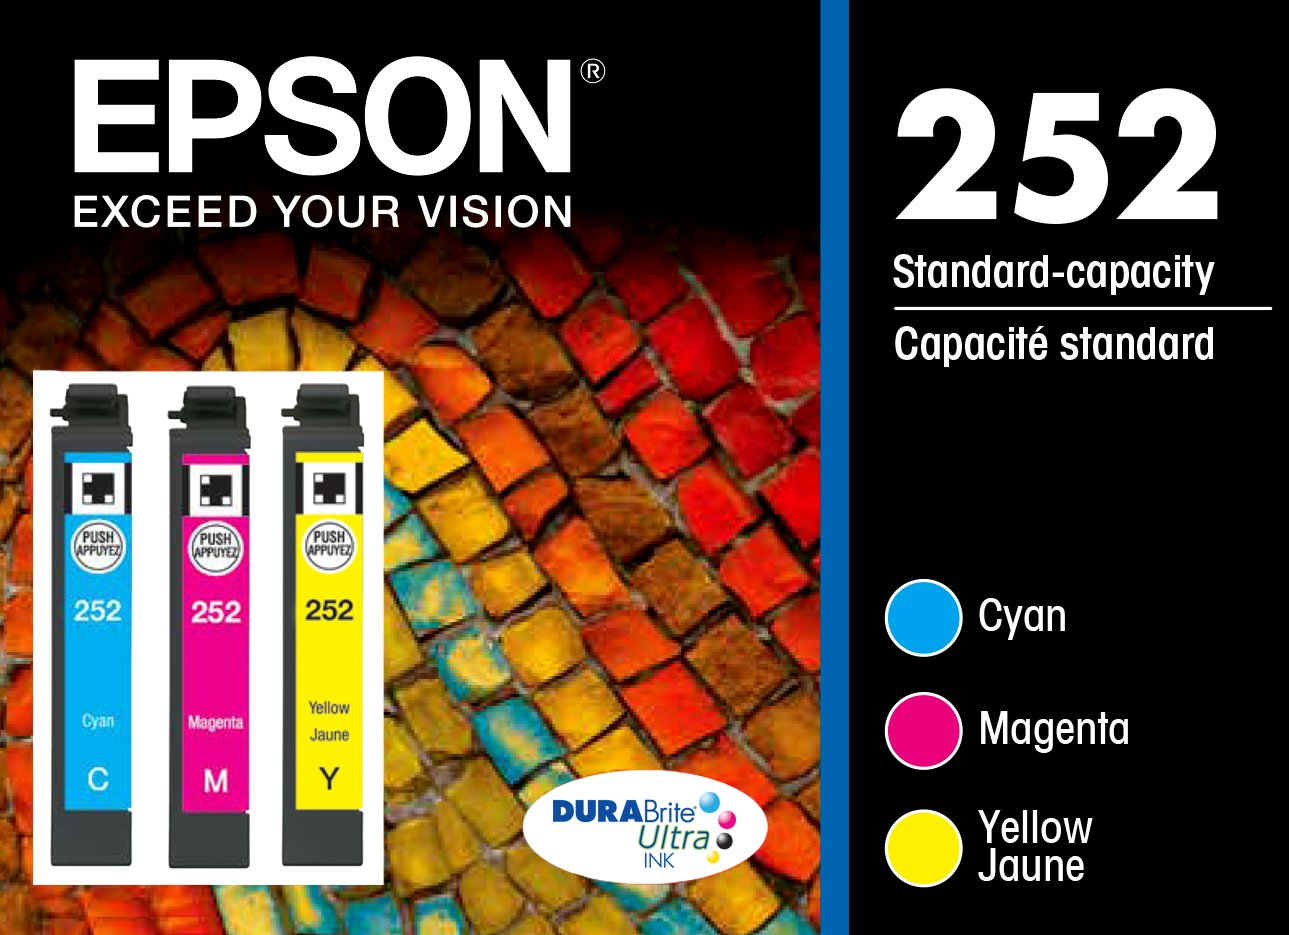 Epson T252520 DURABrite Ultra Color Multi-Pack Ink Cartridges Standard-Capacity (CMY) - Frustration Free Packaging Ink